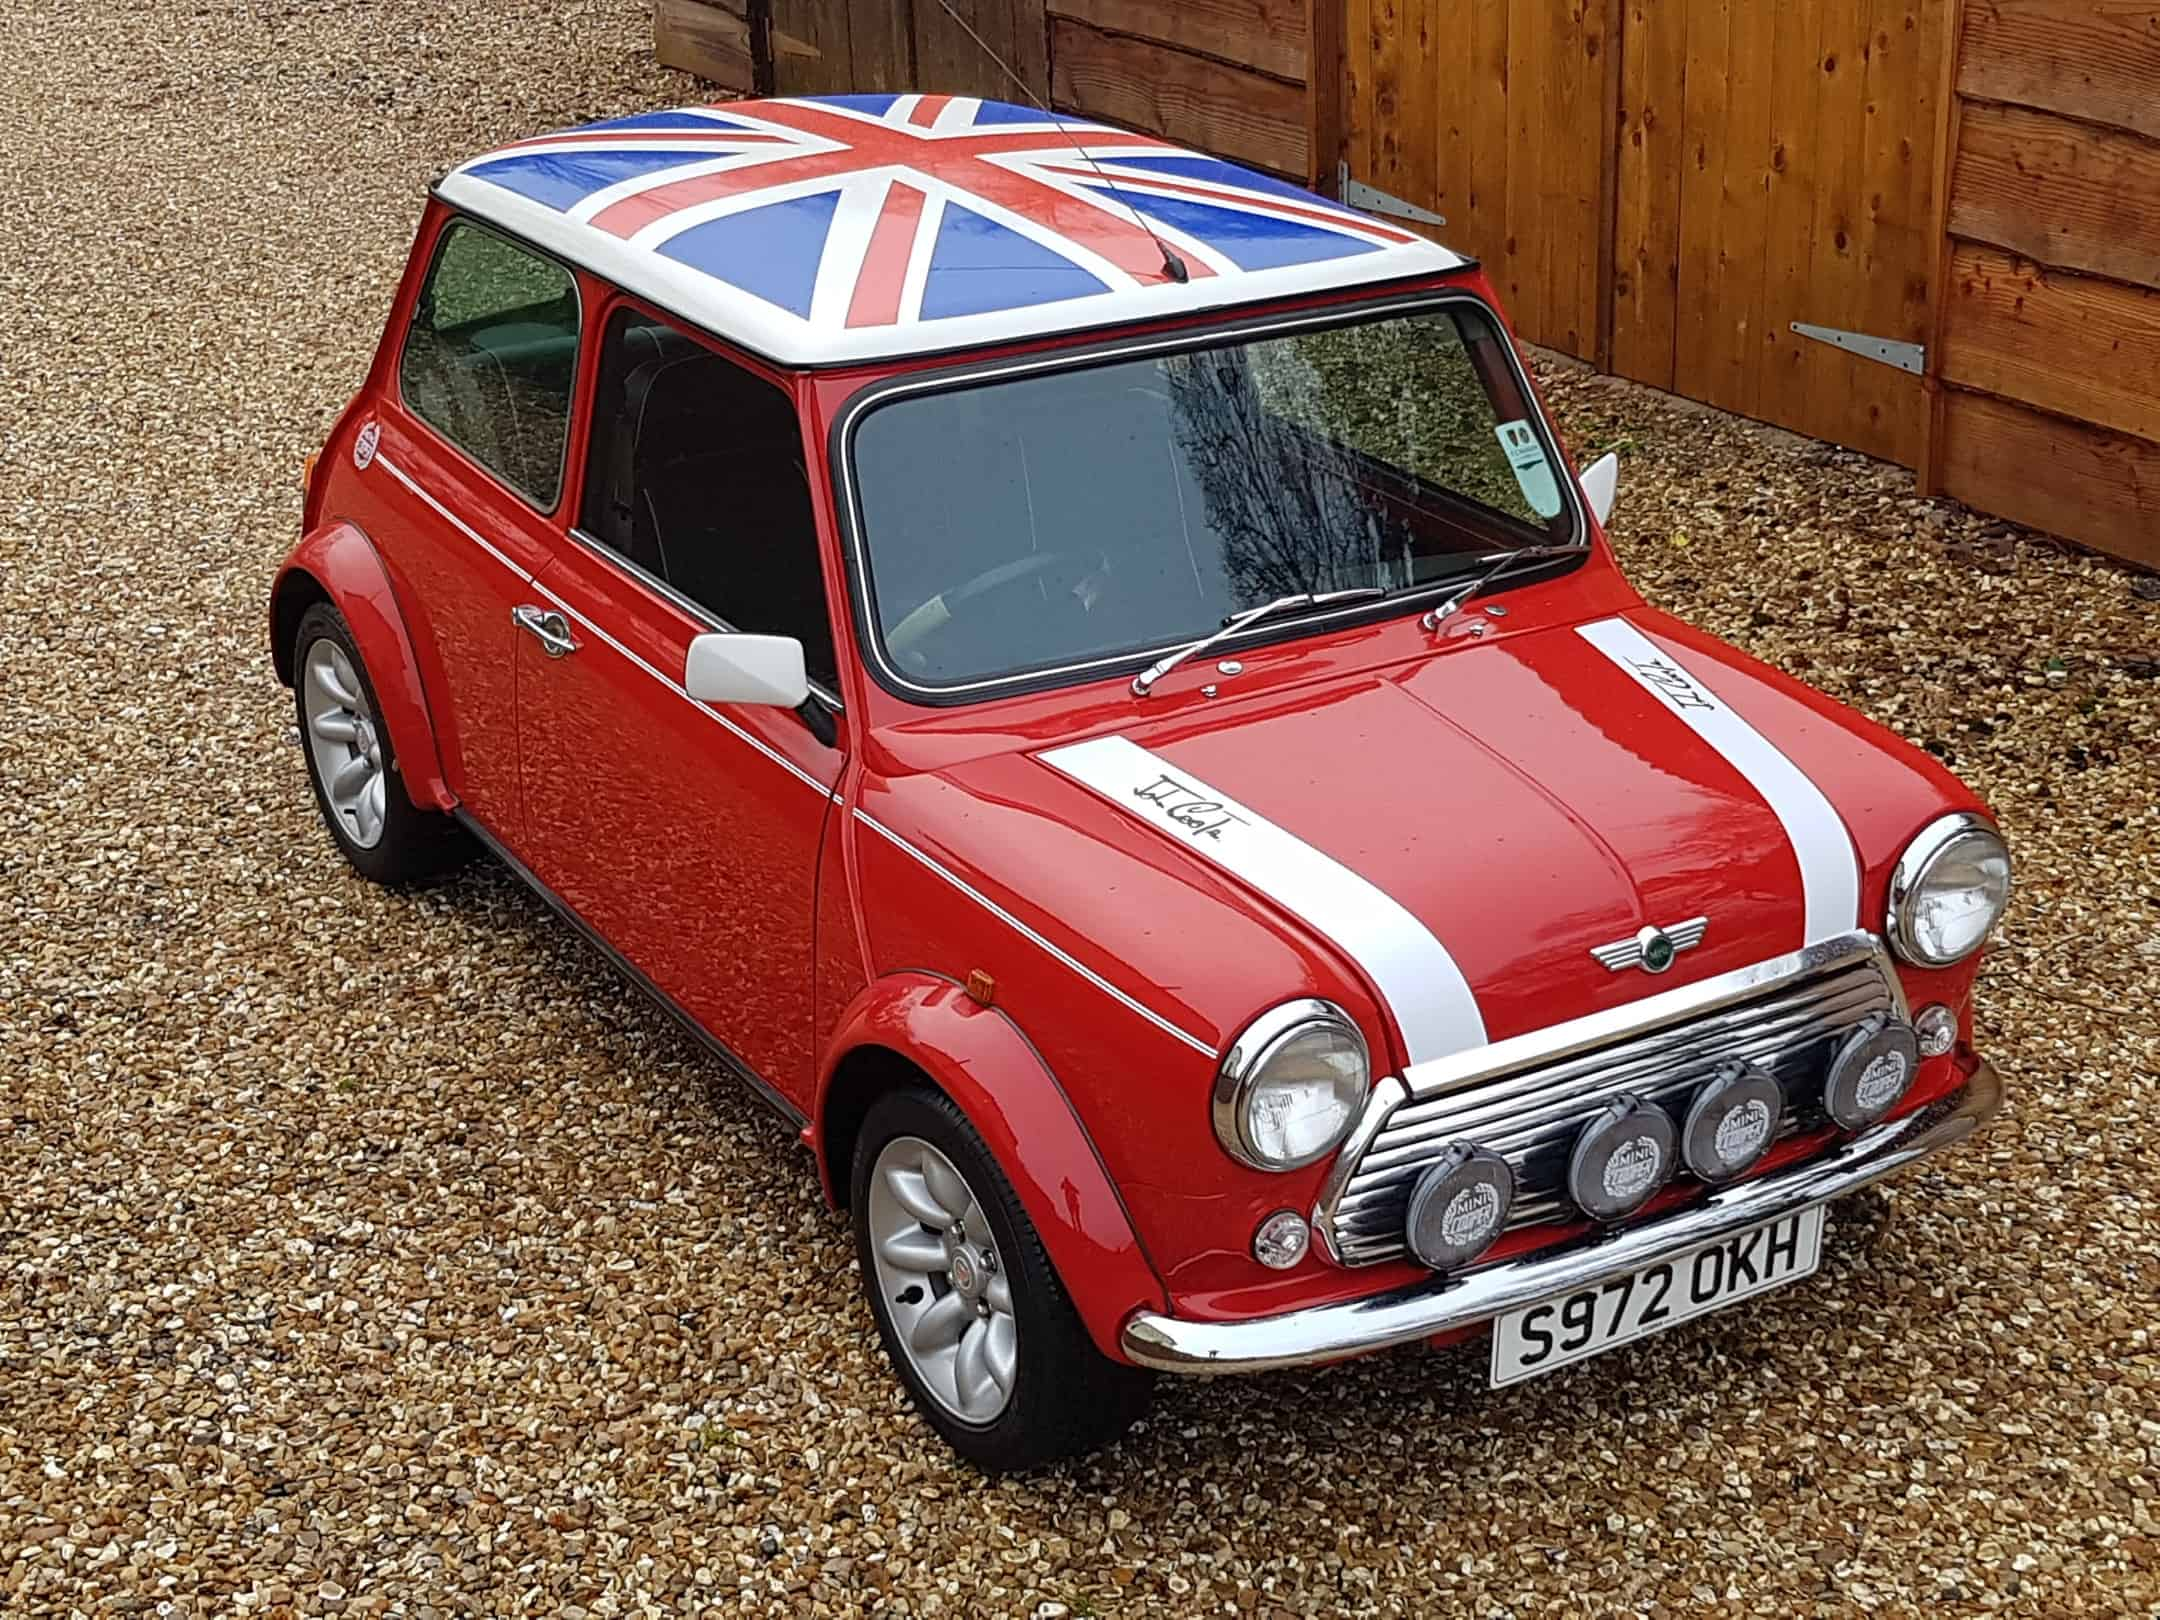 ** NOW SOLD ** 1998 Rover Mini Cooper Sport On Just 21730 Miles From New